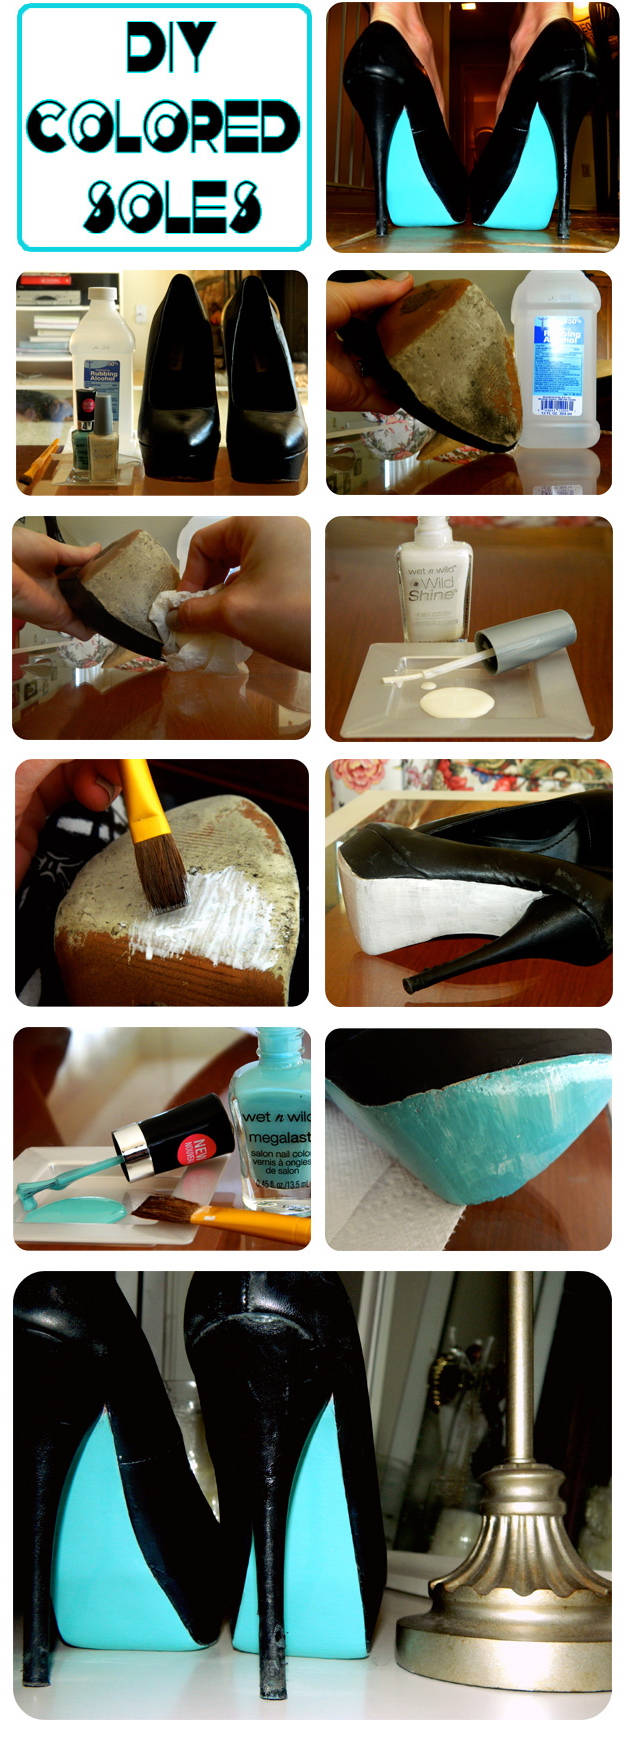 45 super easy and clever diy project ideas list inspired for Clever diy projects